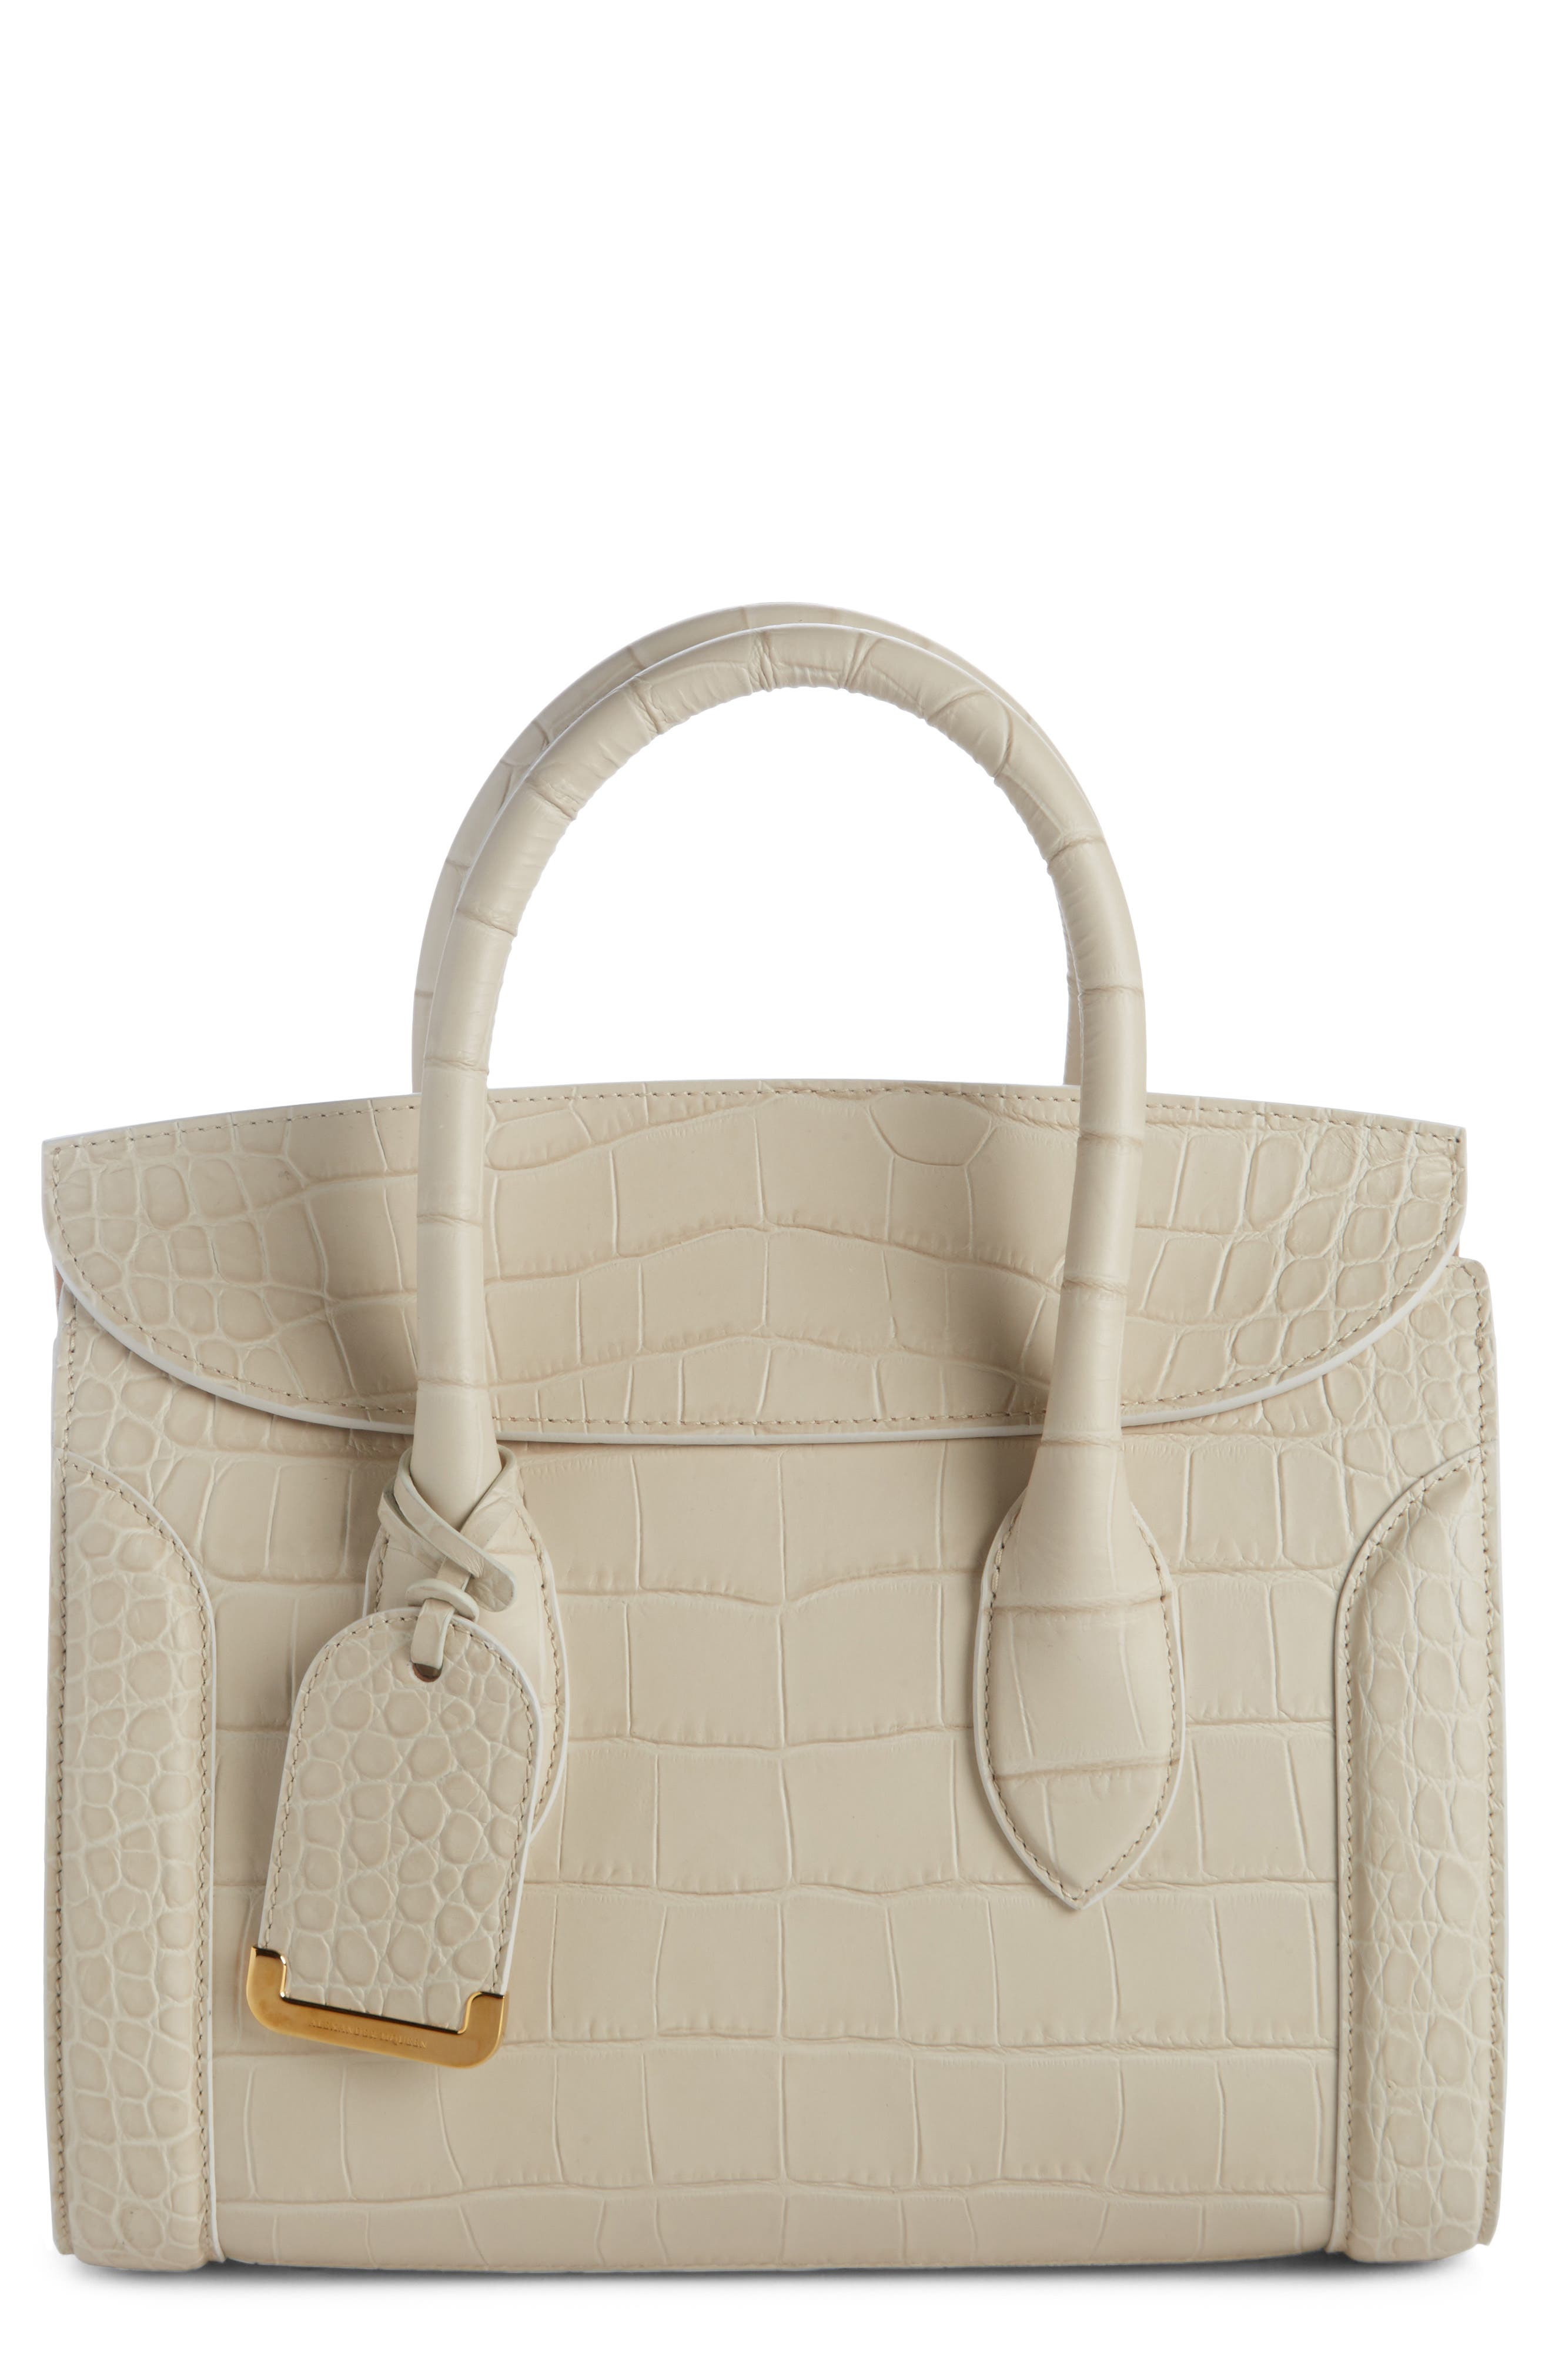 Heroine 30 Leather Satchel,                         Main,                         color, White Bone